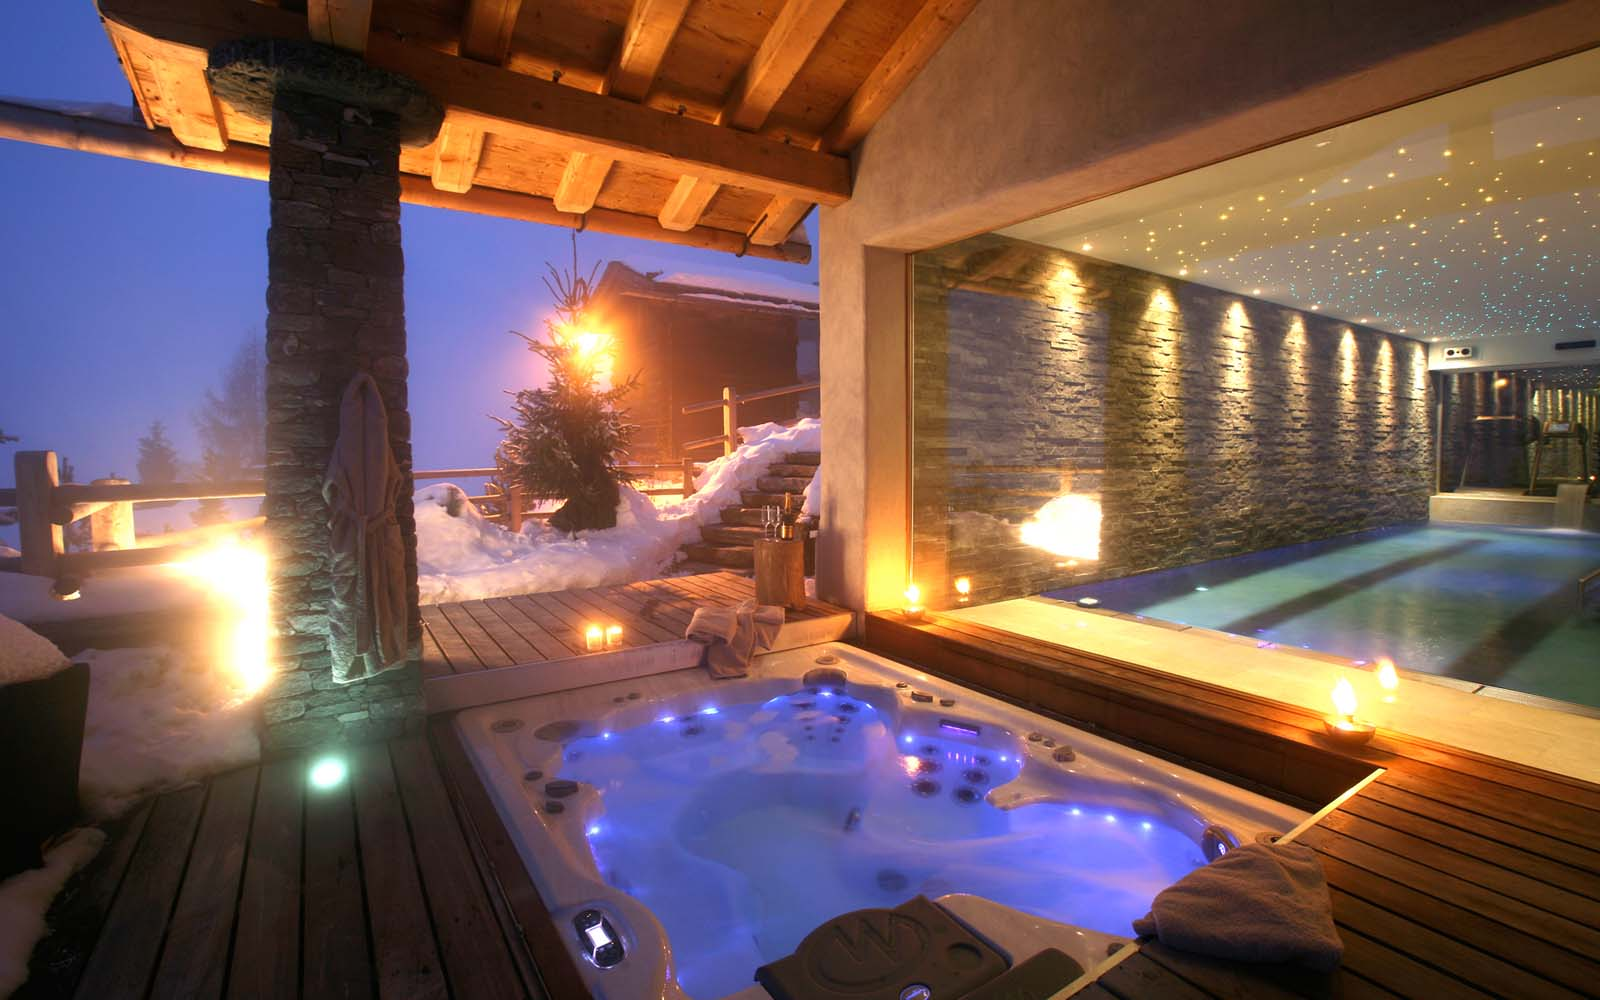 Chalet spa verbier in verbier by skiboutique for Jacuzzi enterre exterieur